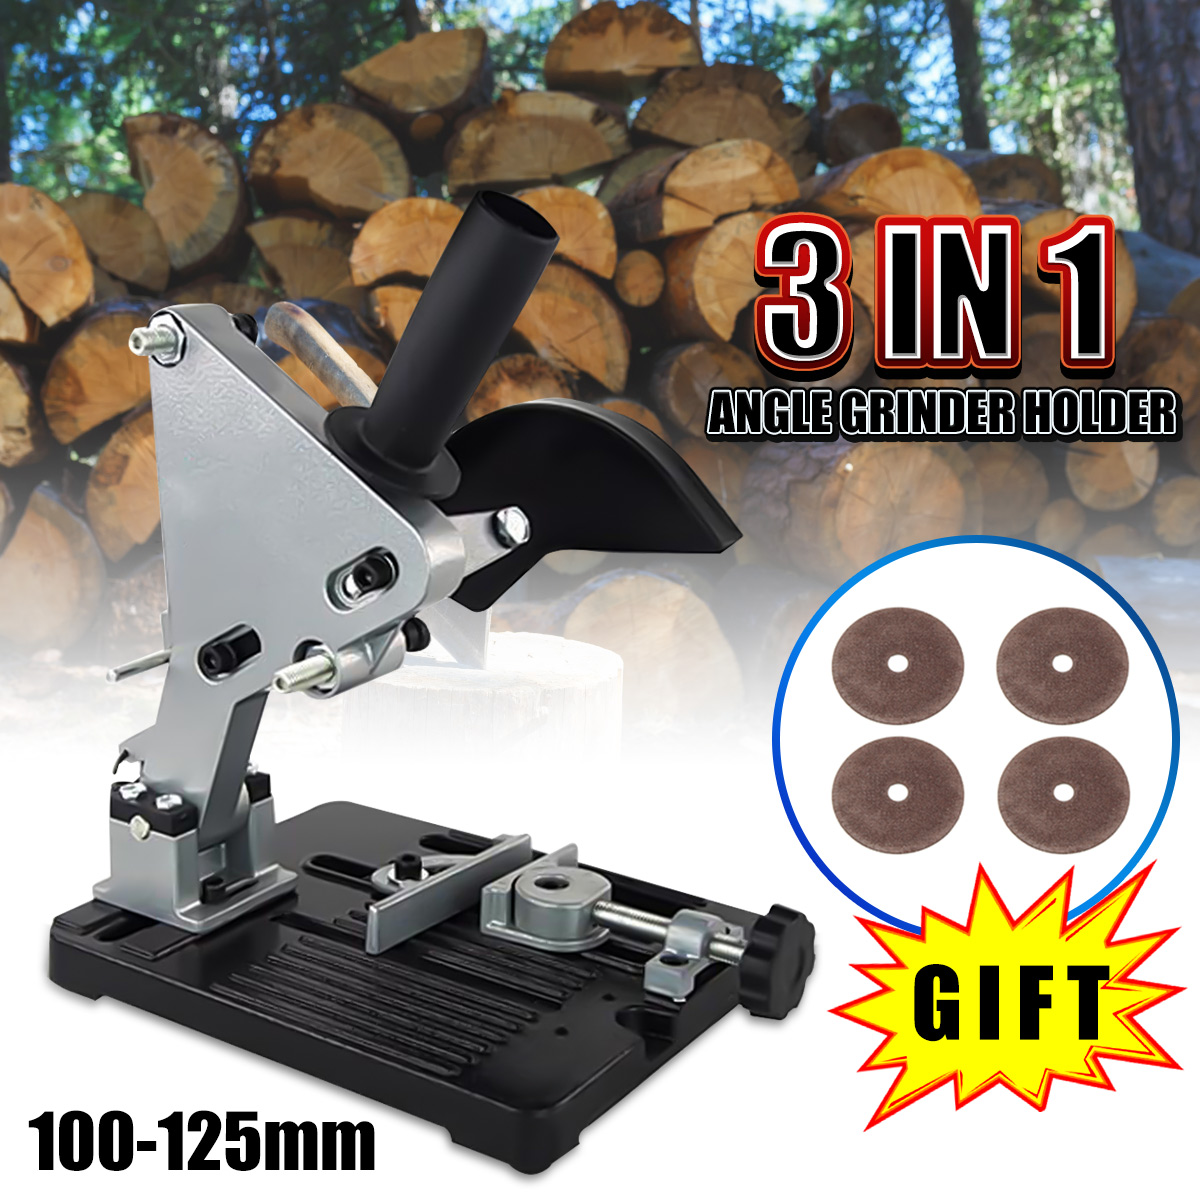 6pcs Aluminum Angle Grinder Electric Stand Angle Grinder Bracket Holder Support for 100-125 Angle Grinder with Saw Blade aluminum angle grinder bracket holder